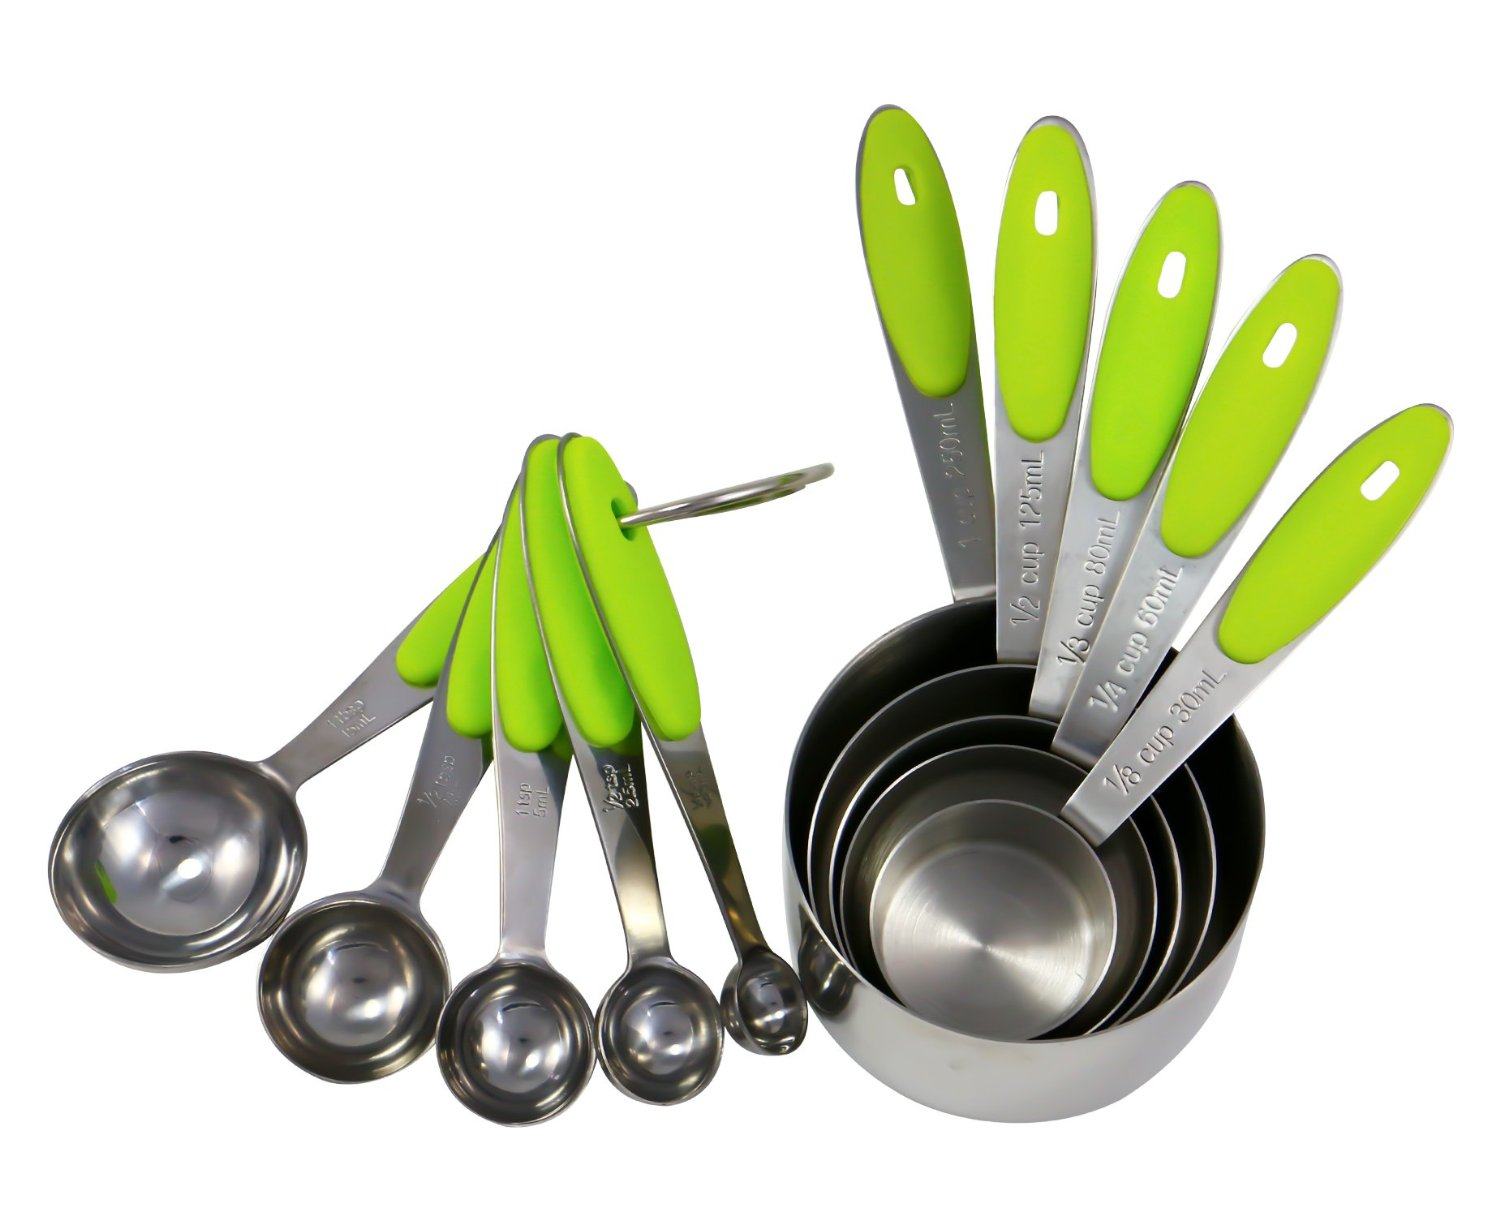 Stock your kitchen with these essential tools that make cooking easier